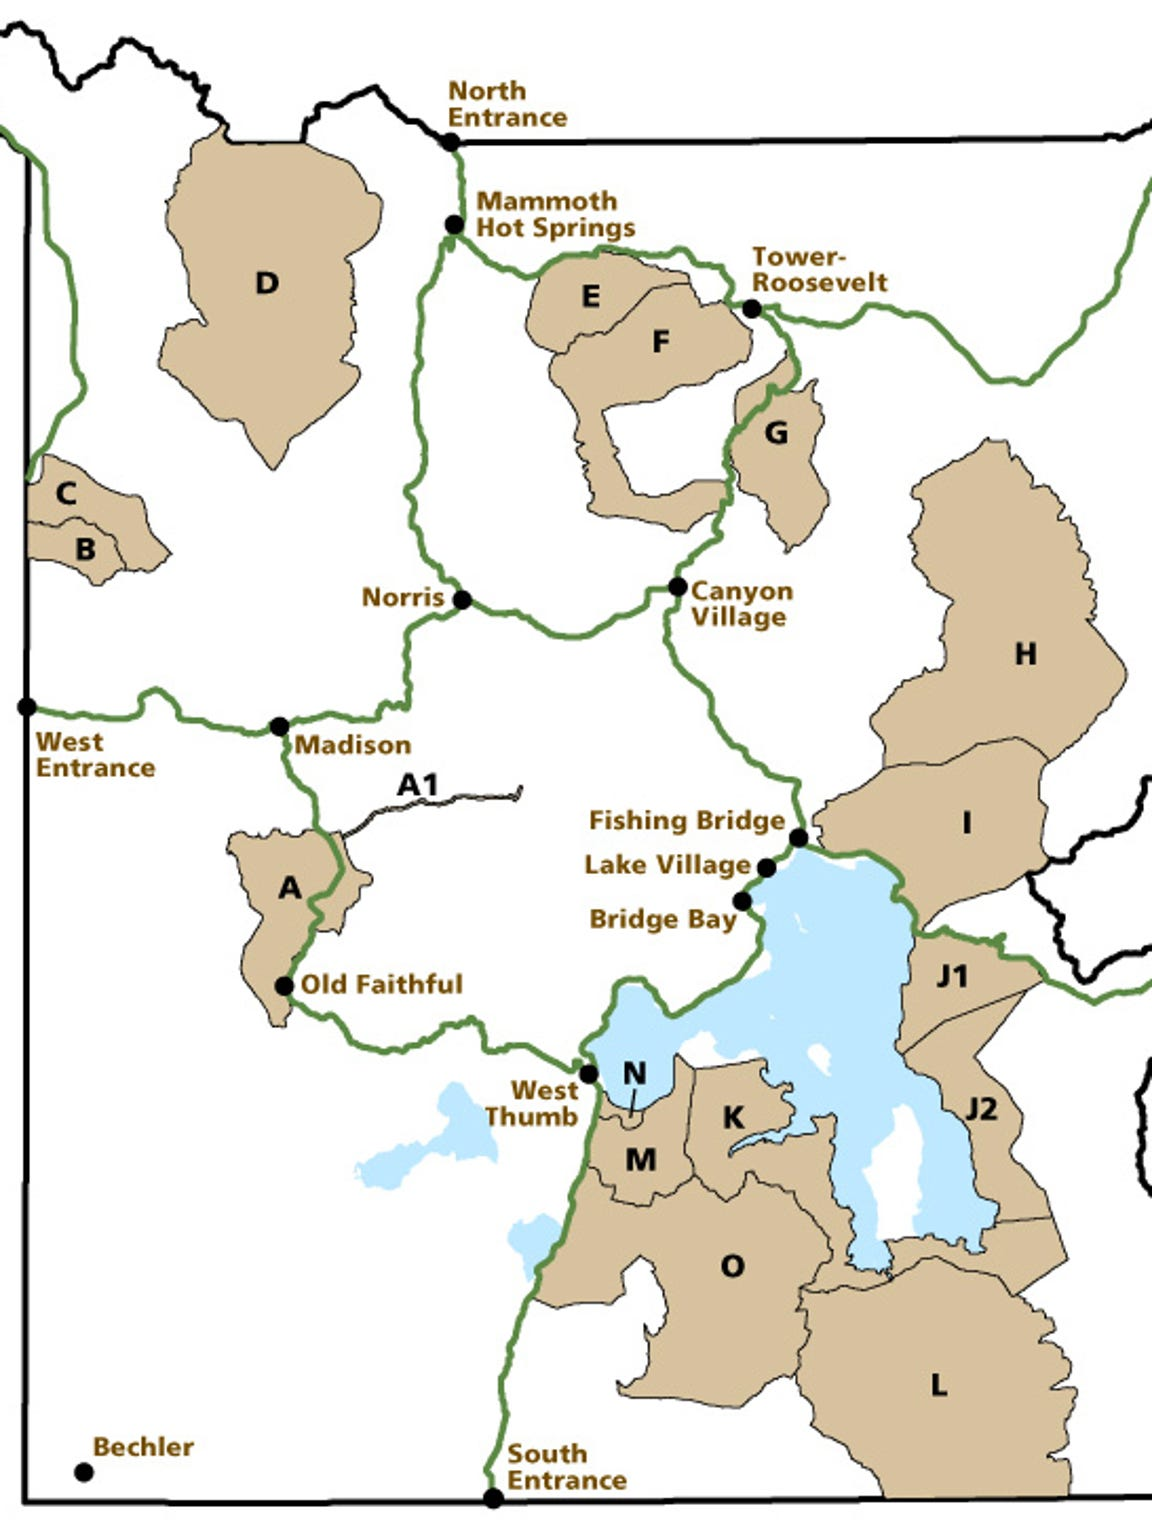 There are 17 bear management areas in Yellowstone National